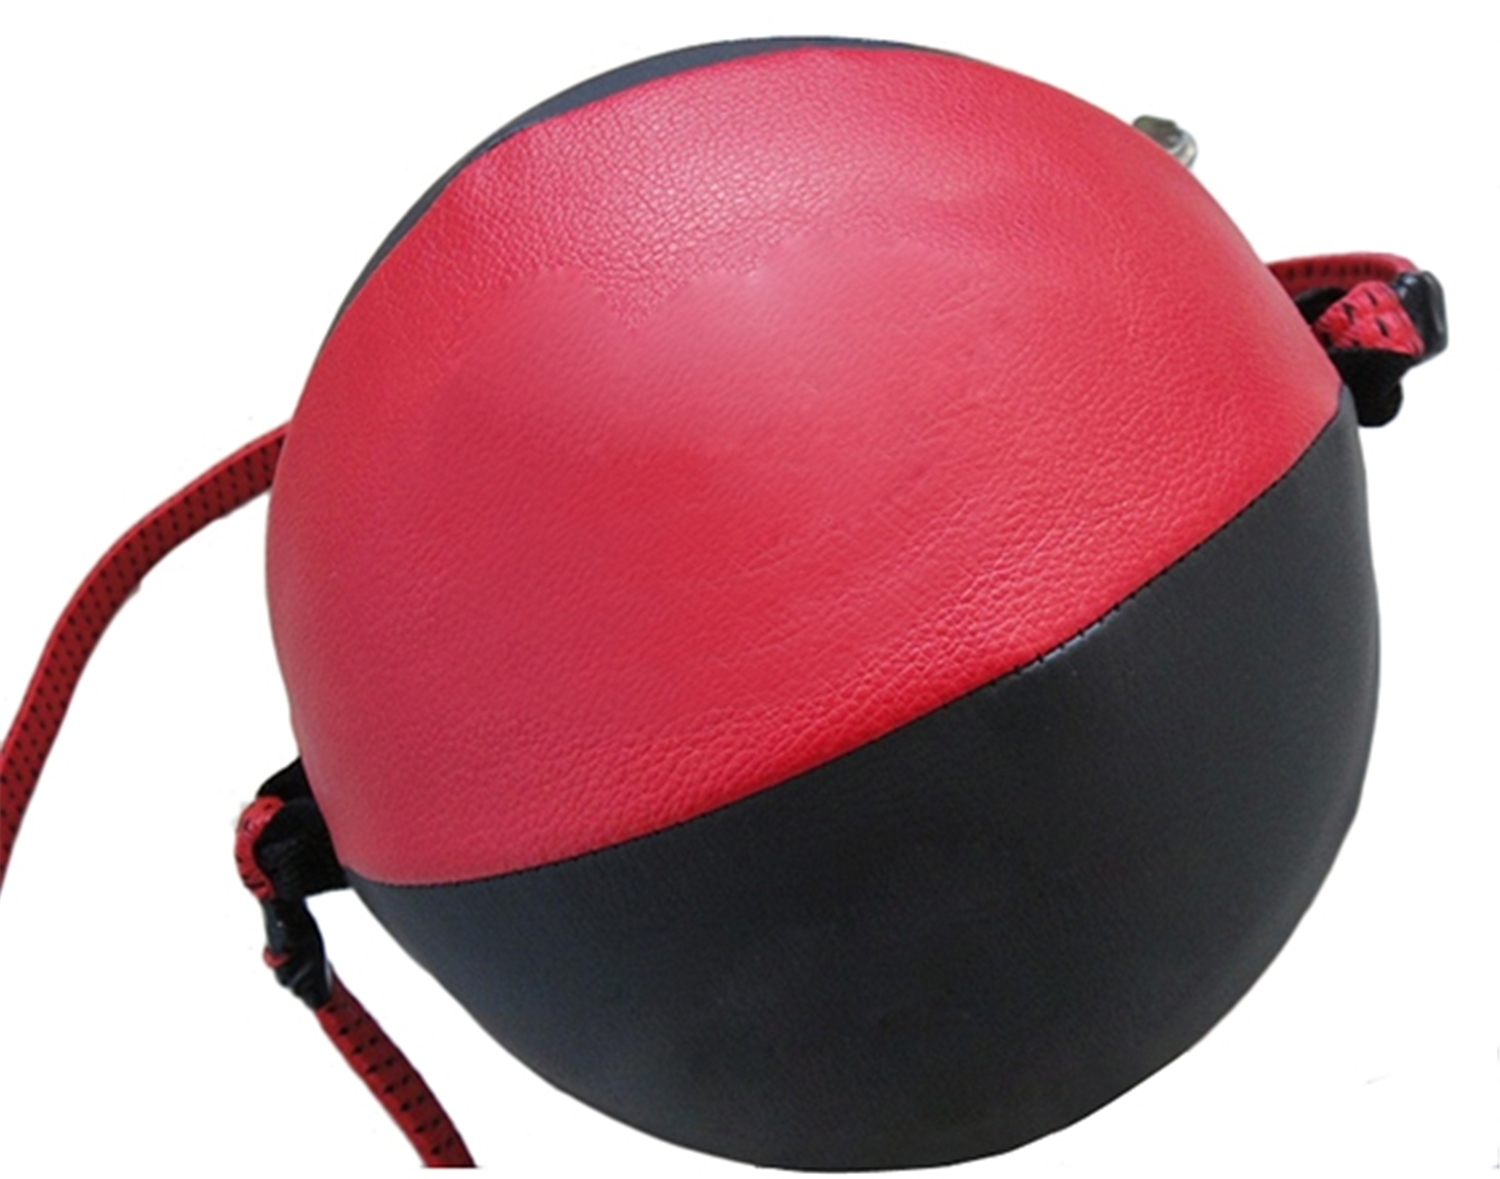 Jo.In End MMA Boxing Training Gear Punching Speed Ball Bag (Red)